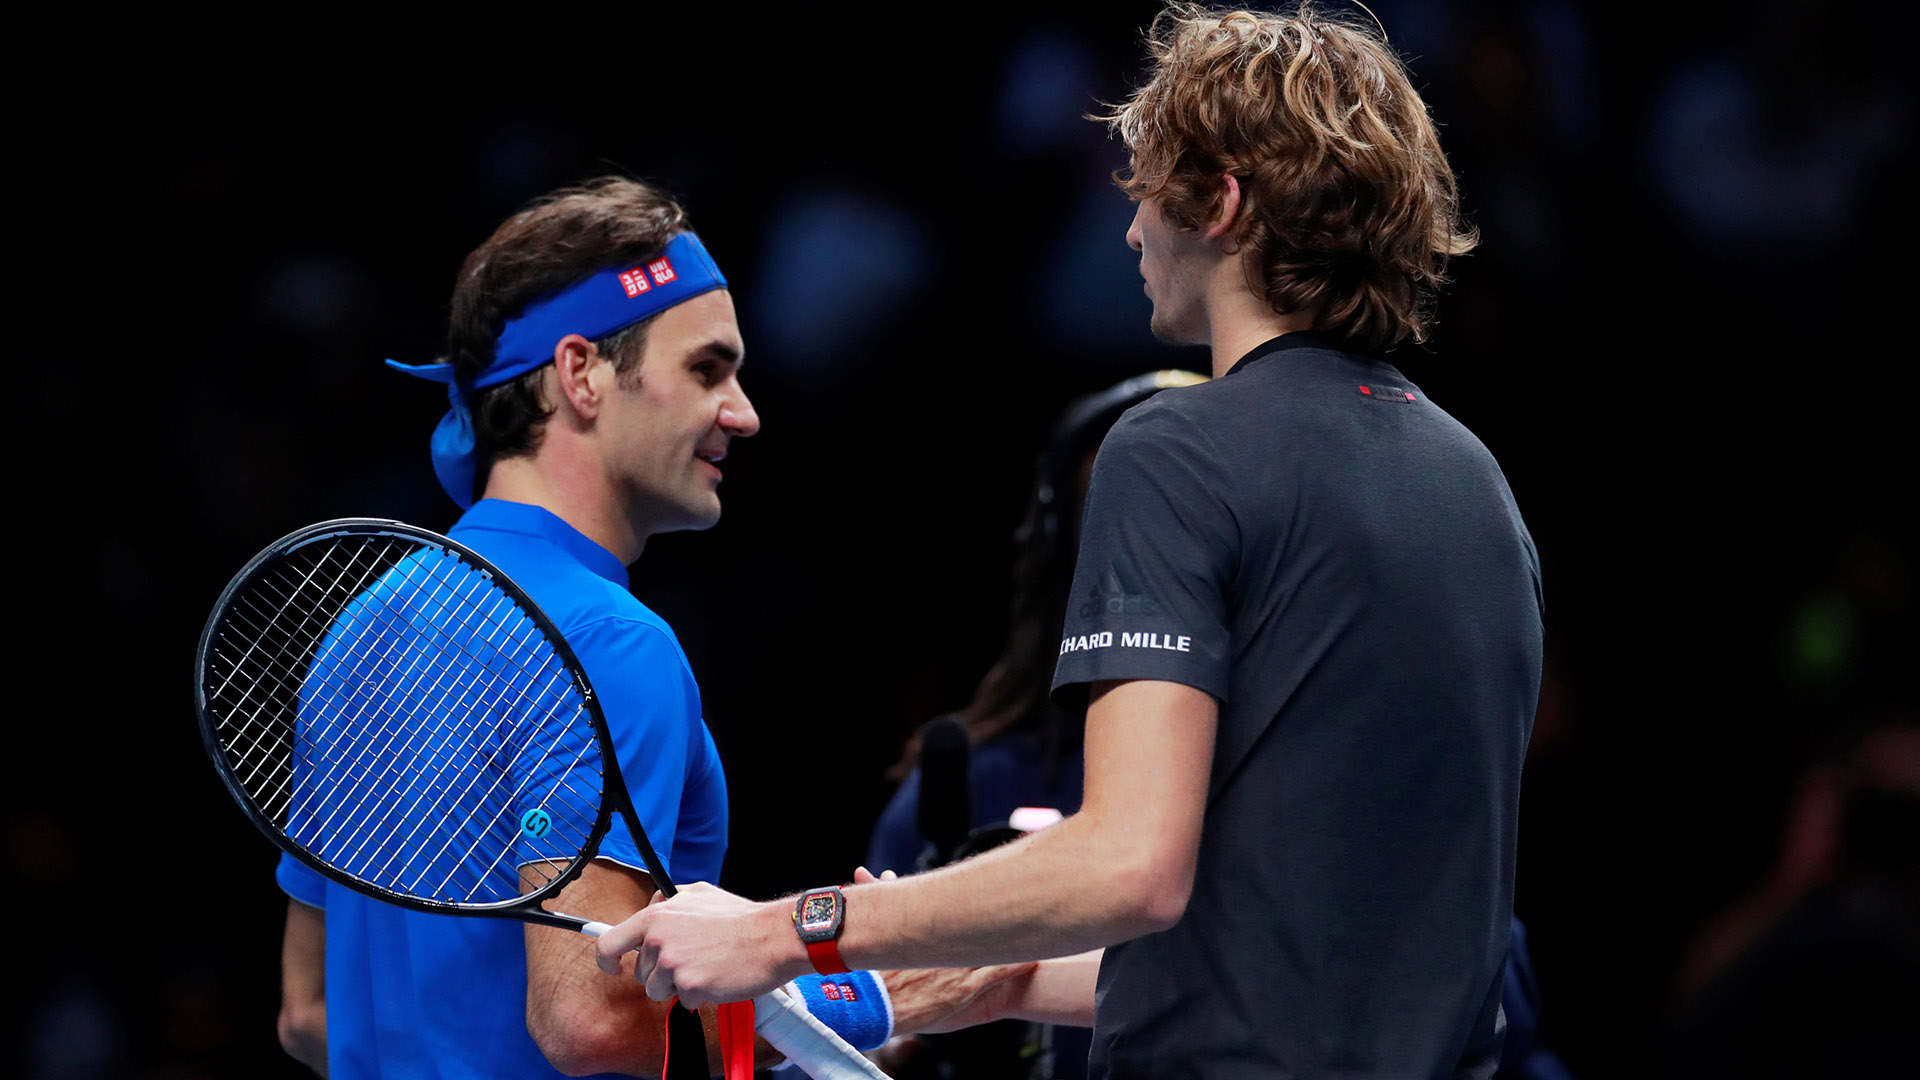 Tennis – ATP Finals – The O2, London, Britain – November 17, 2018 Germany's Alexander Zverev shakes hands with Switzerland's Roger Federer after winning his semi final match Action Images via Reuters/Andrew Couldridge